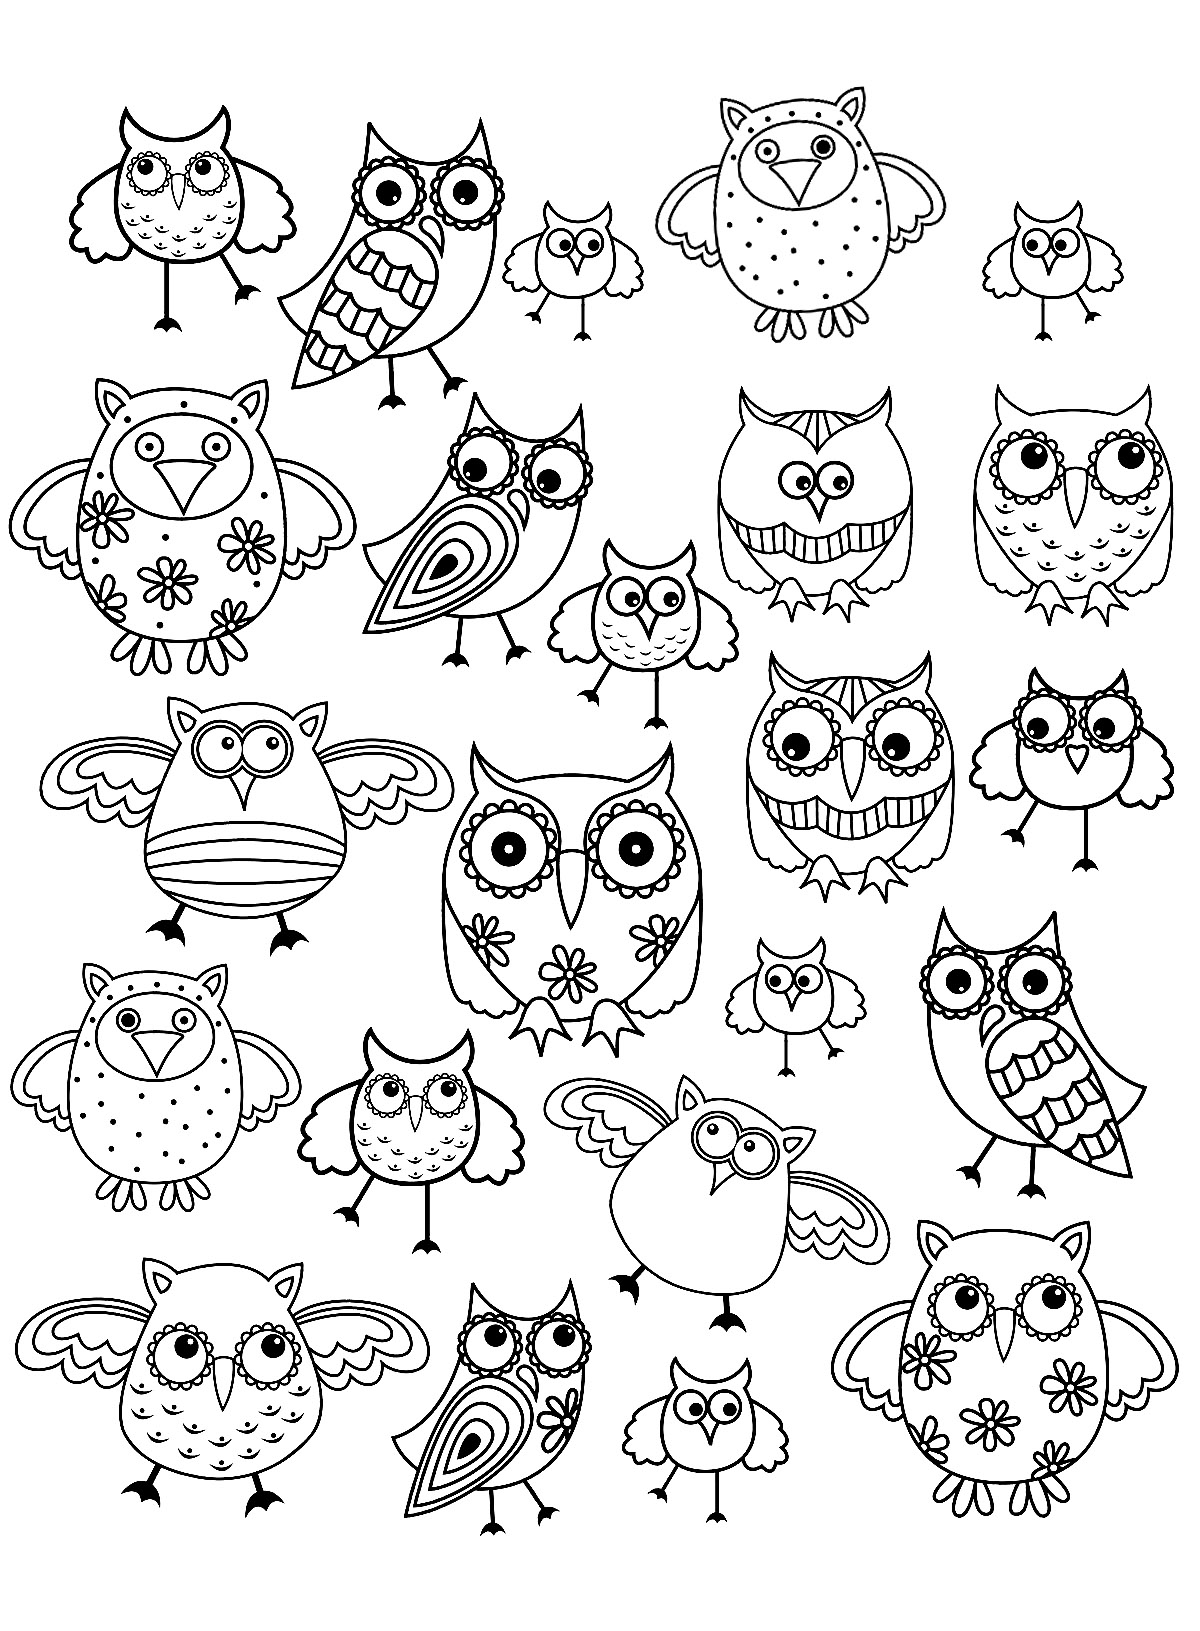 Doodle Owls 1 Owls Adult Coloring Pages